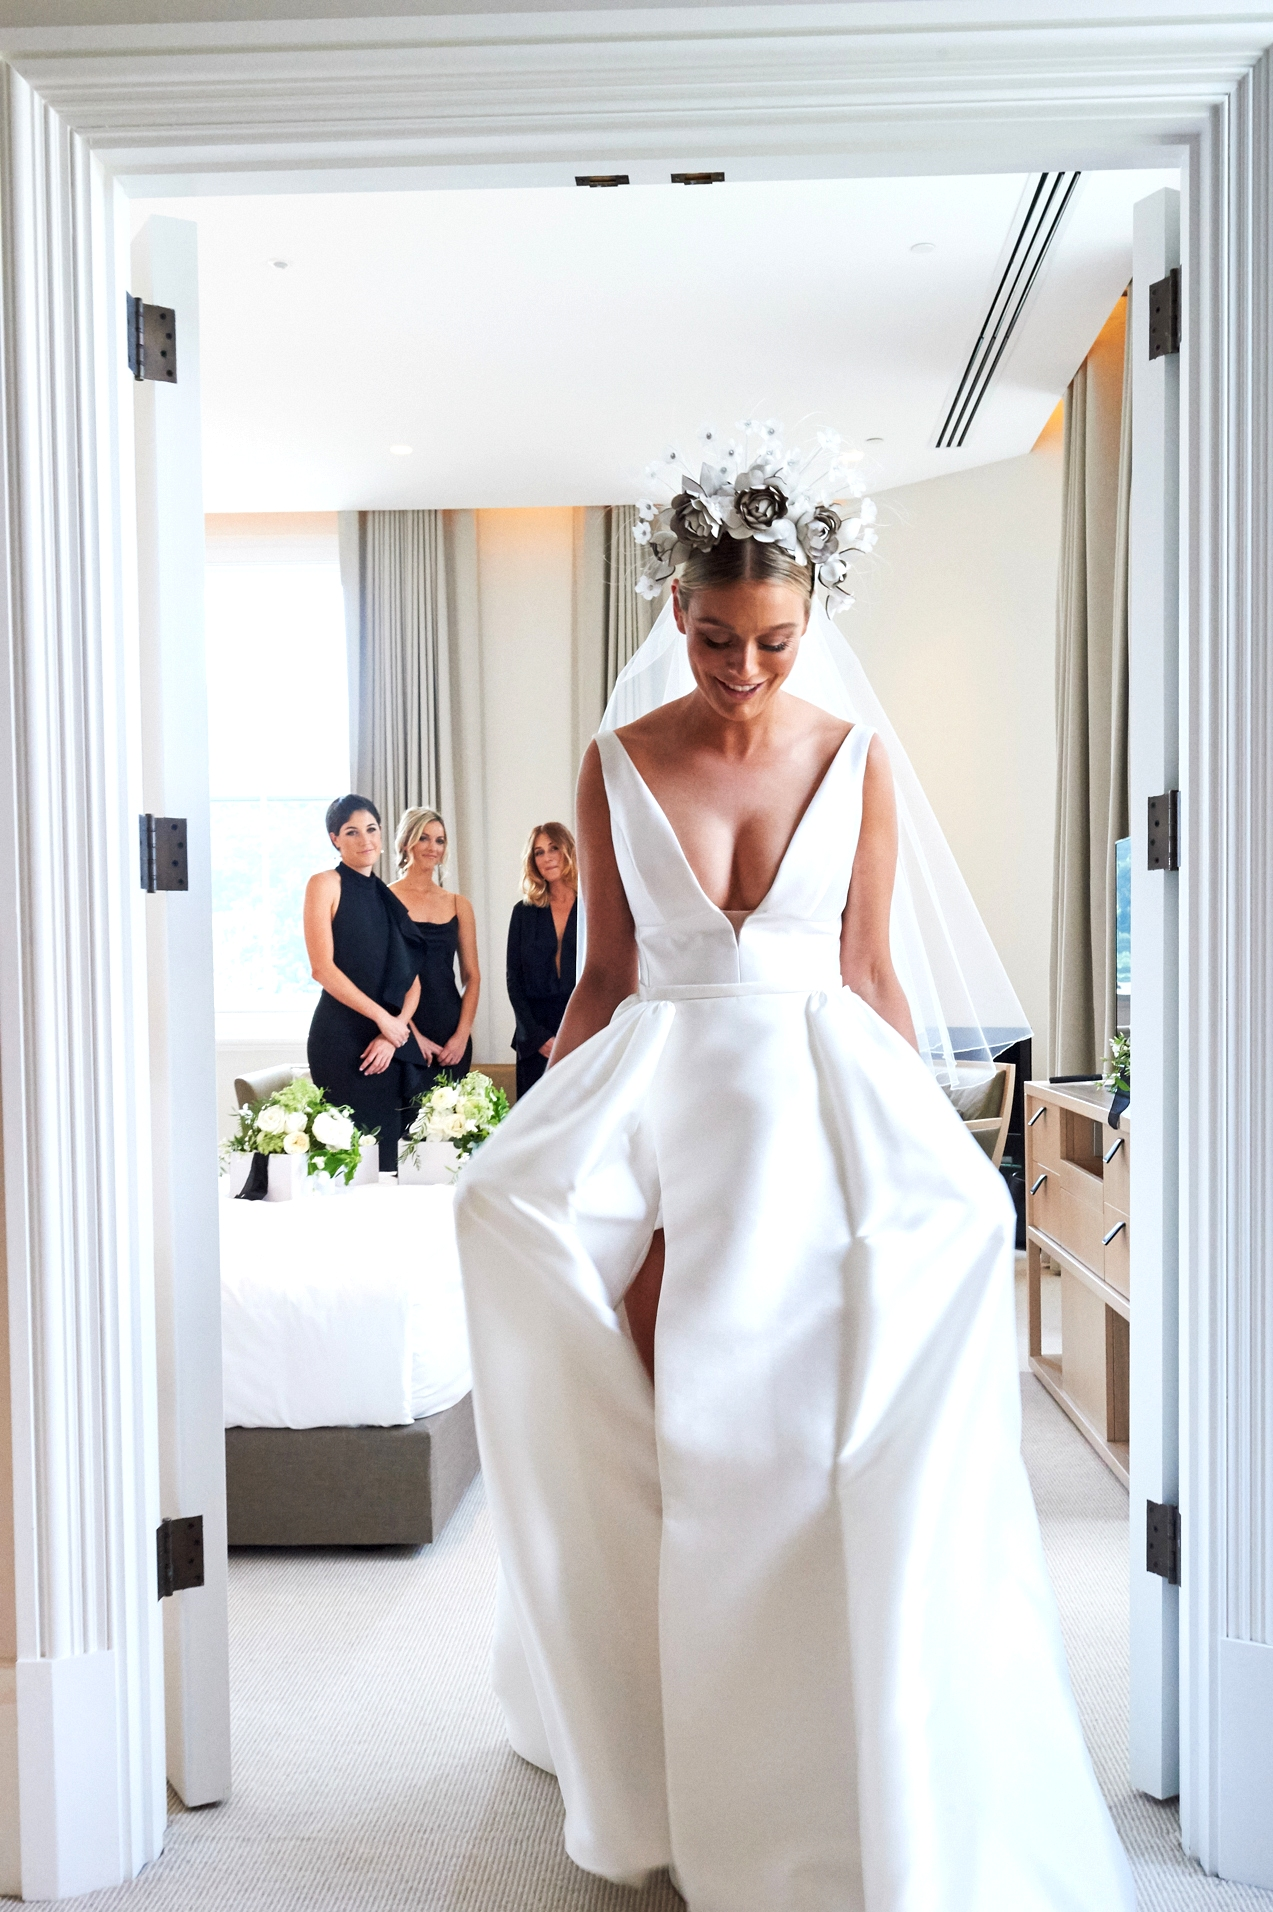 Top Bridal Hairpiece Trends for 2019